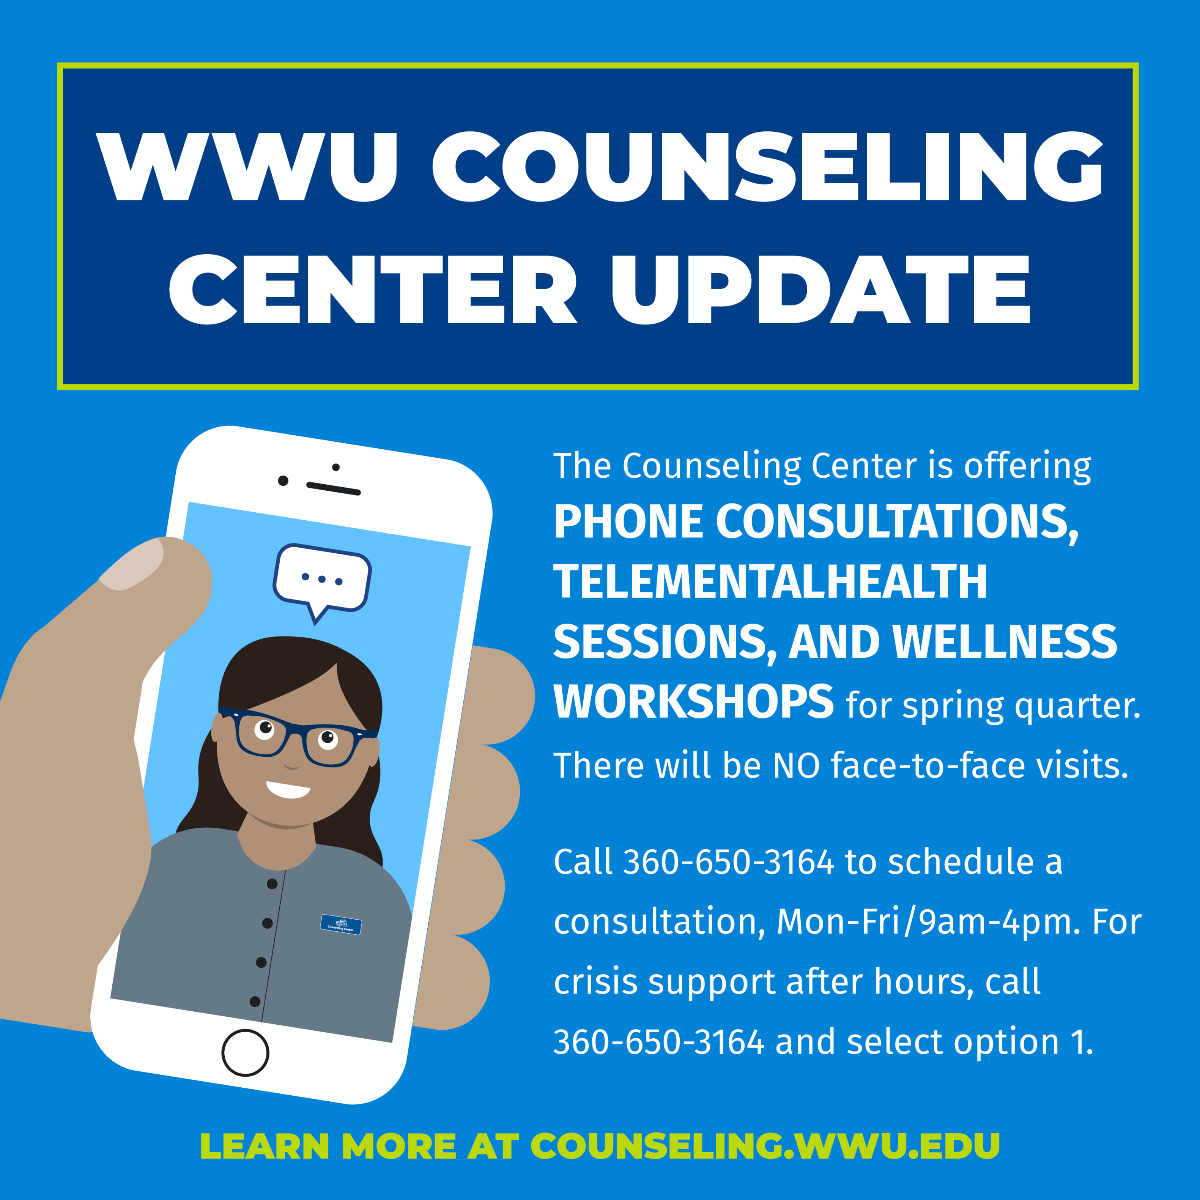 flyer with information about counseling center resources